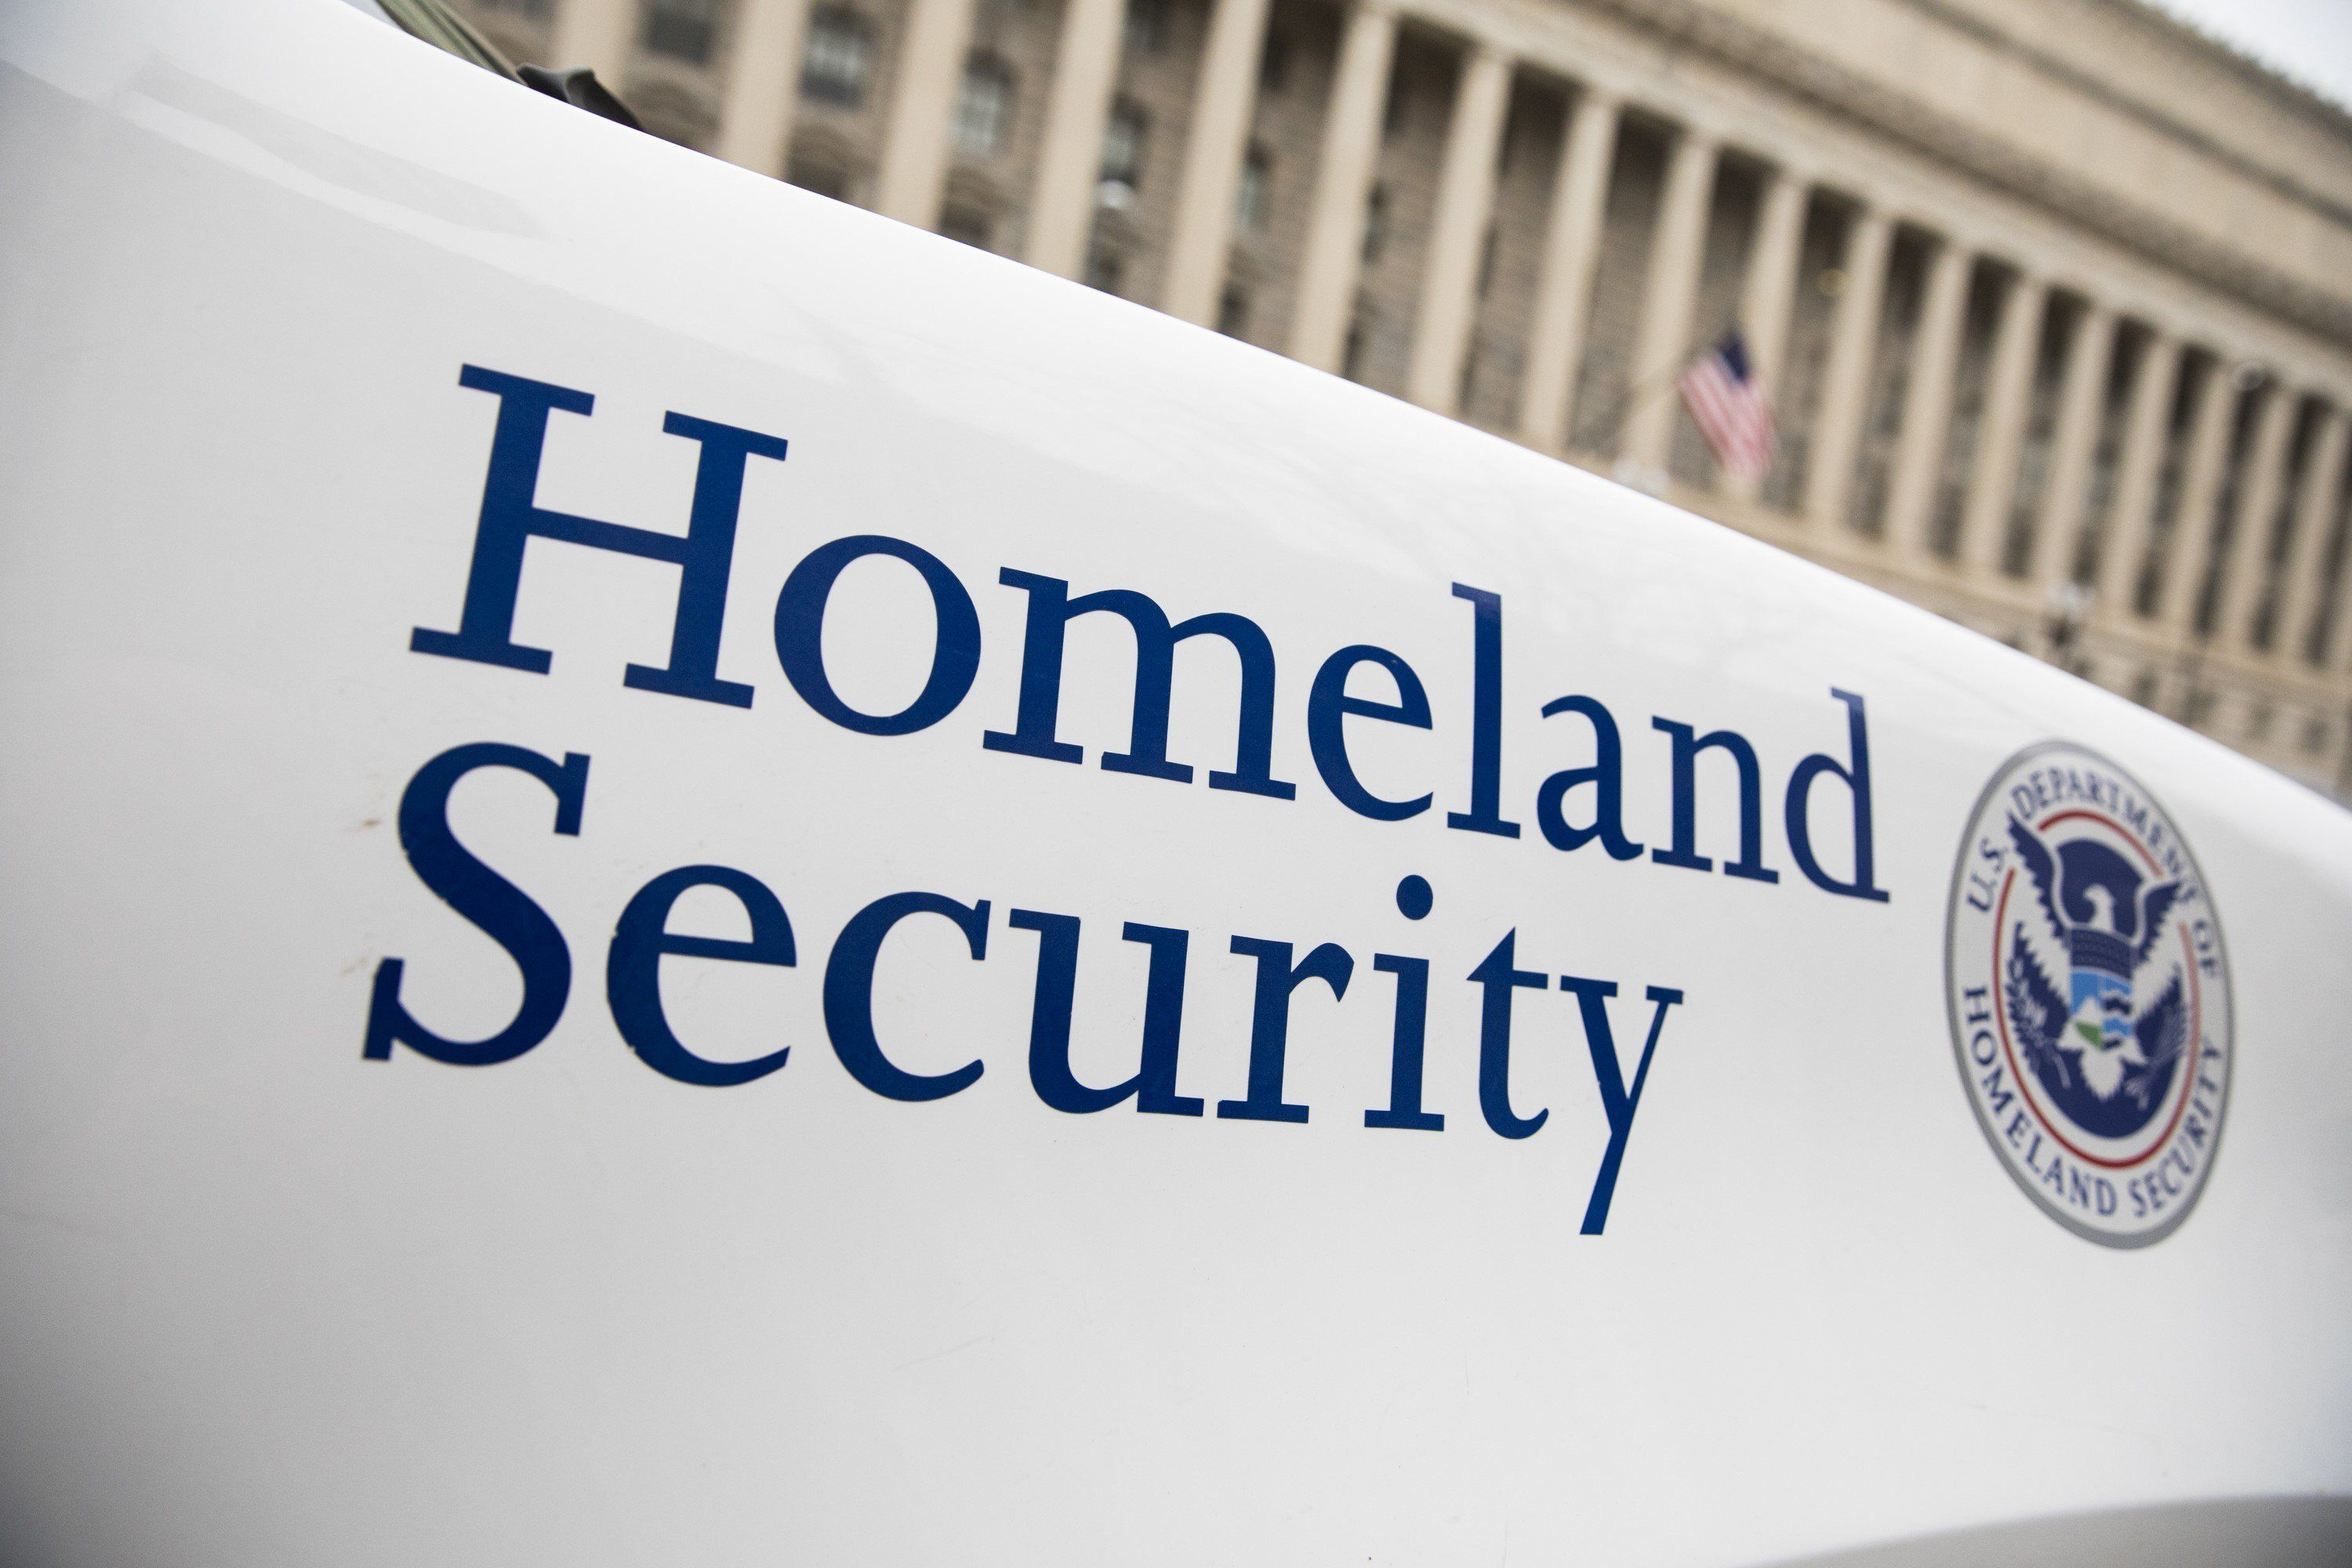 WASHINGTON, USA - MARCH 7: The Department of Homeland Security logo is seen on a law enforcement vehicle in Washington, United States on March 7, 2017. (Photo by Samuel Corum/Anadolu Agency/Getty Images)